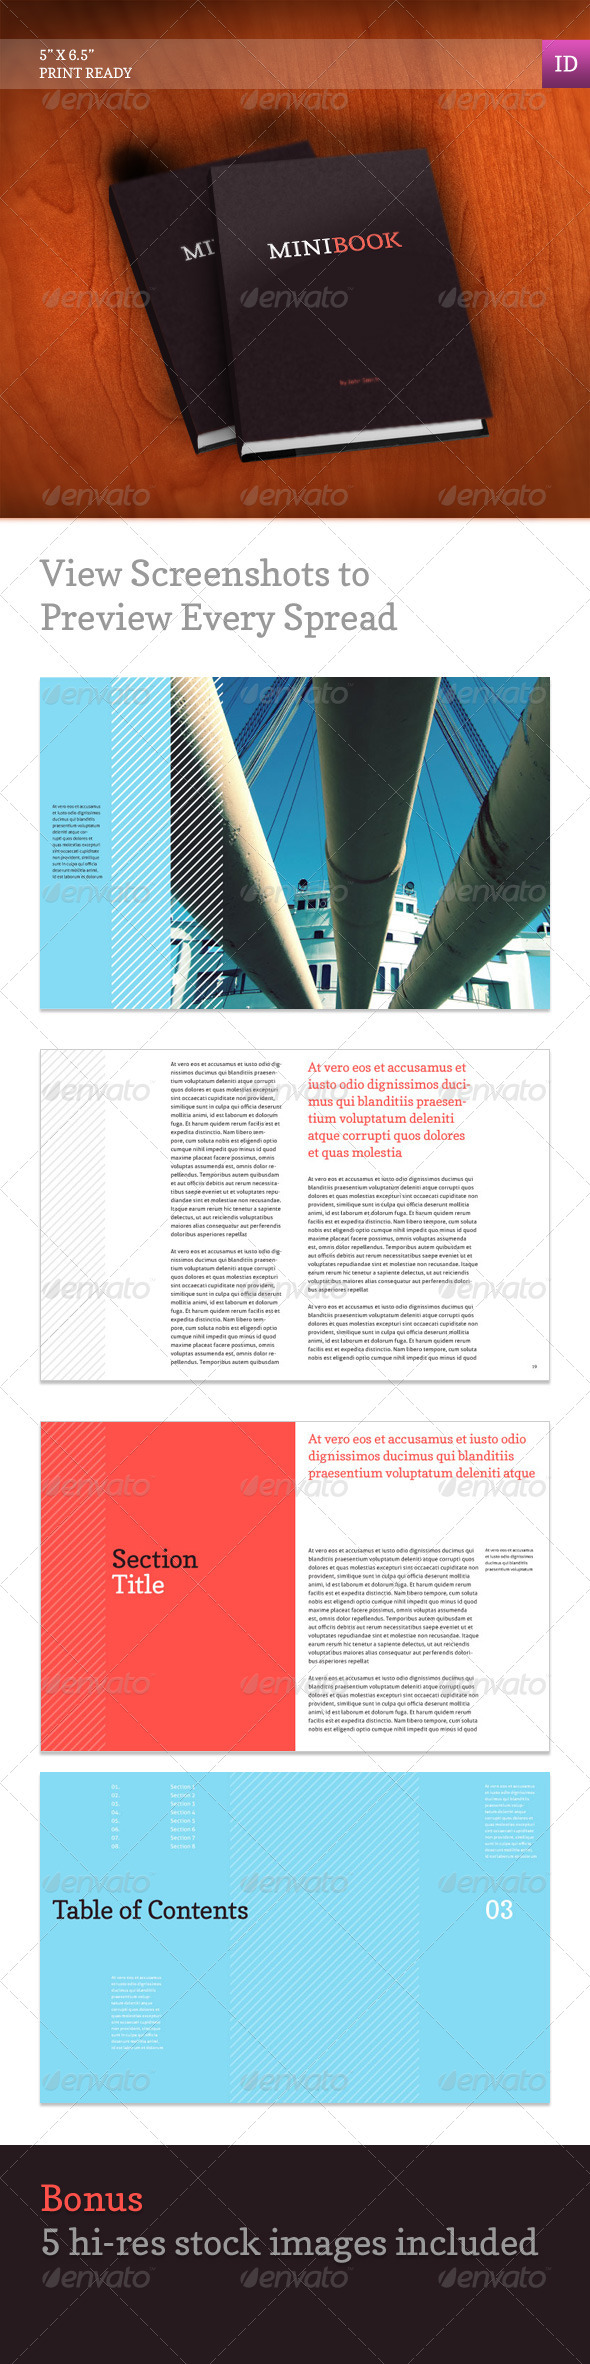 indesign templates for books - indesign graphicriver mini book 1376003